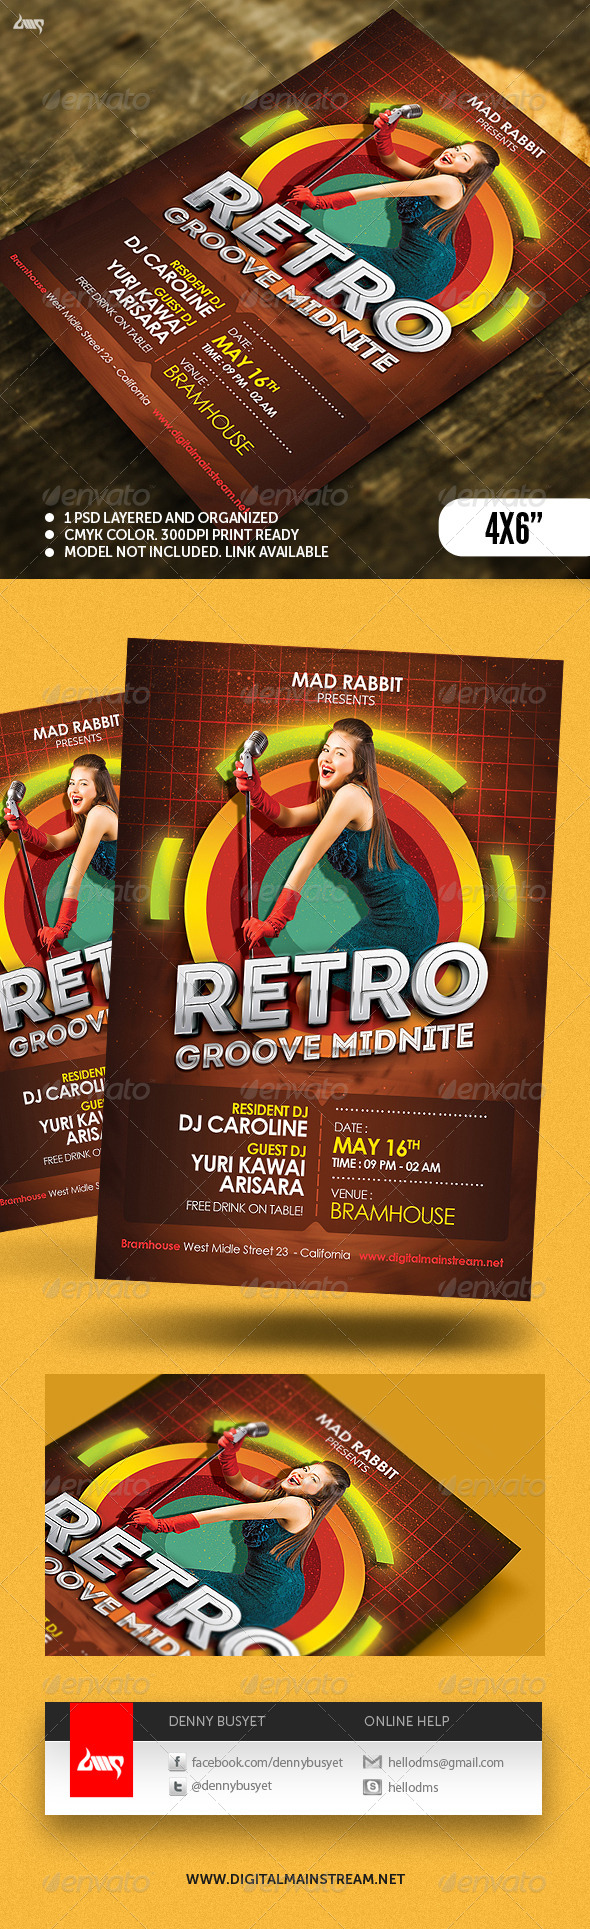 Retro Groove Club Flyer Psd Template